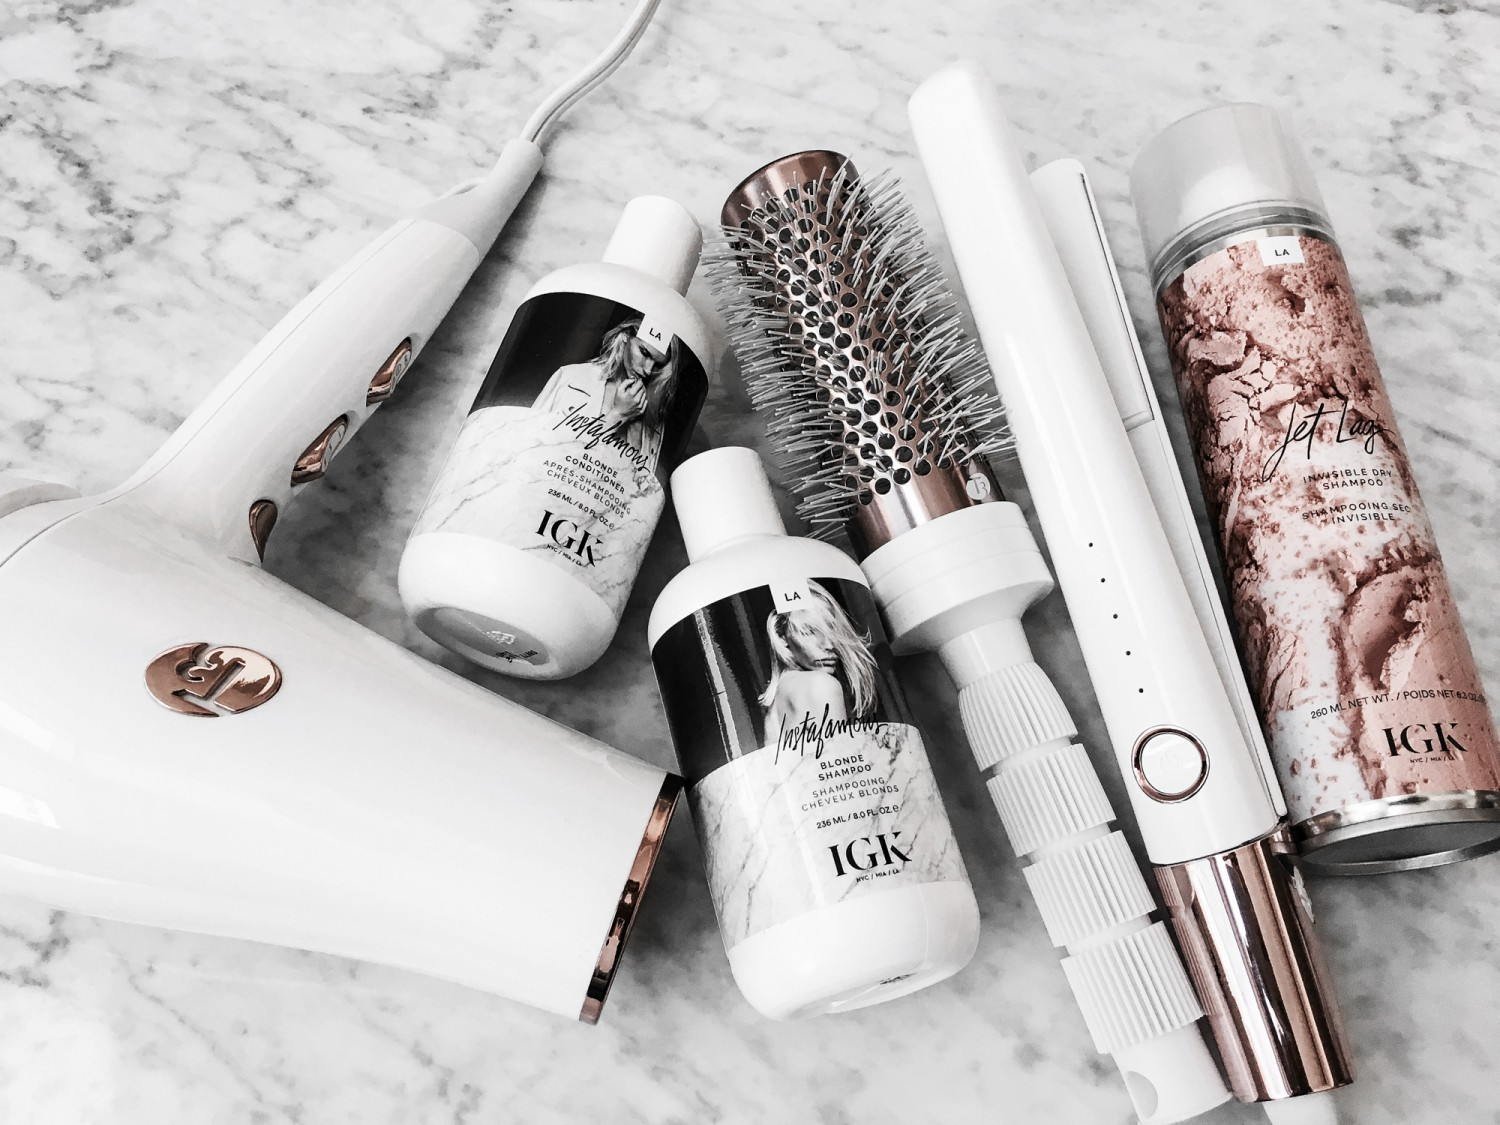 figtny.com | Tools of the Trade 2.0